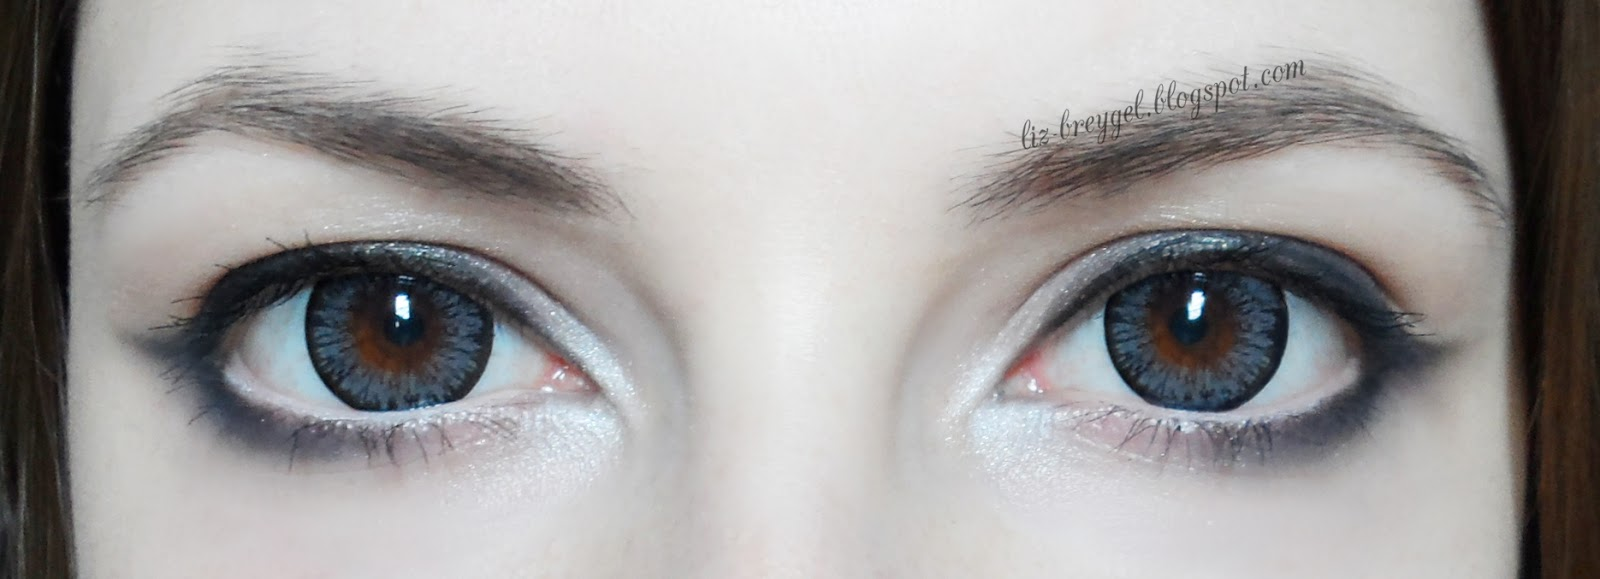 big anime doll eyes pictures makeup lenses blue gray circle lenses pictures review